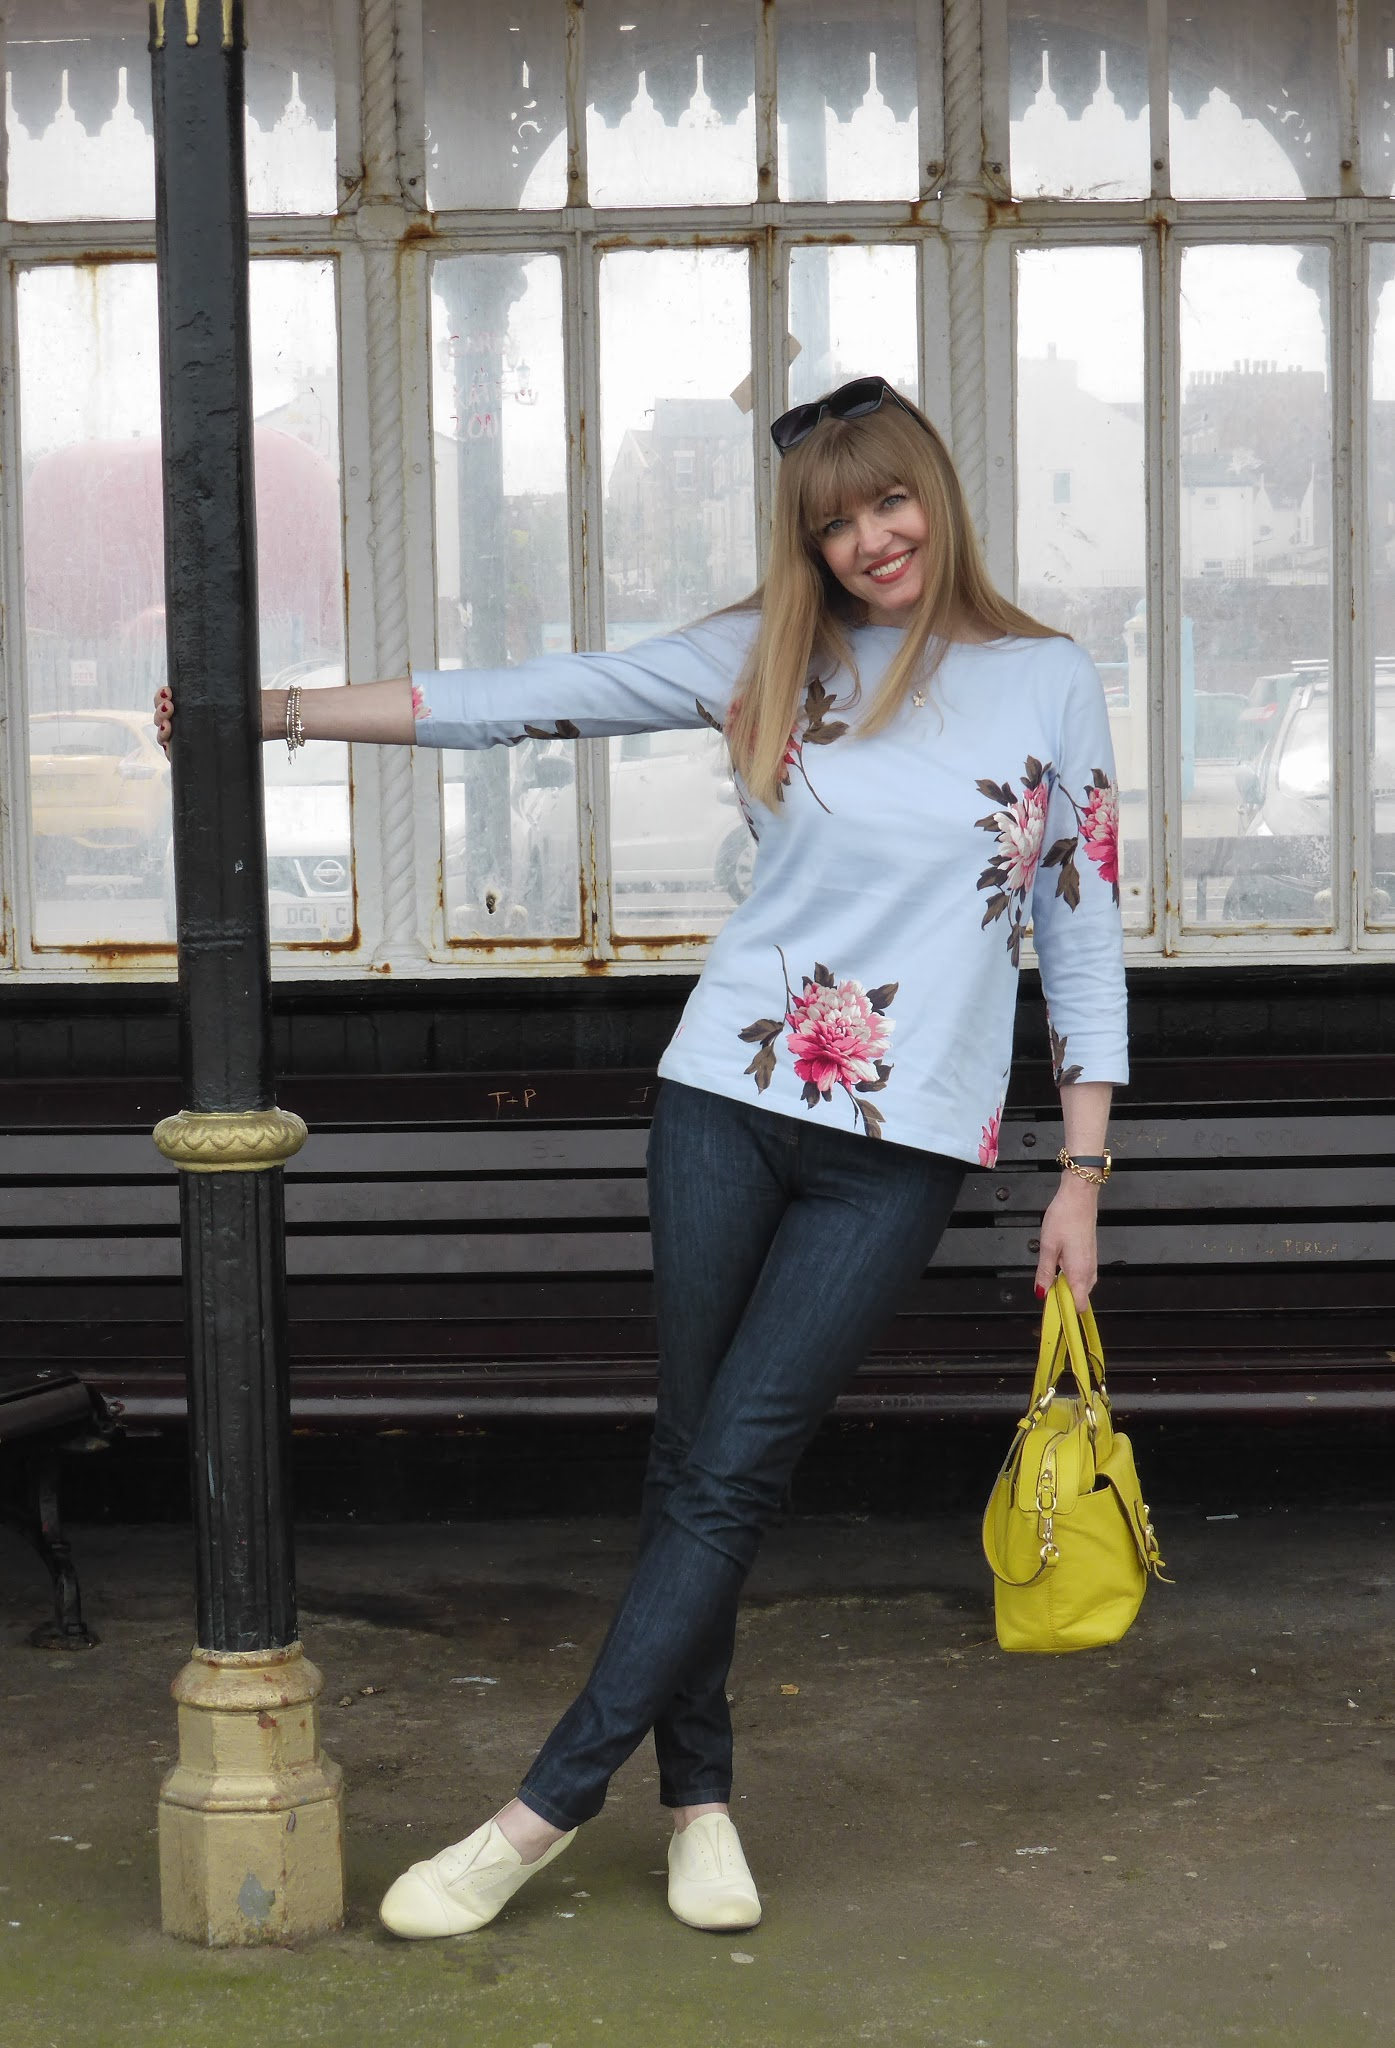 What Lizzy Loves, over 40 blogger wearing Joules blue and pink floral Harbour top, Boden skinny jeans, Boden yellow bowling bag, Clarks pale yellow leather brogues